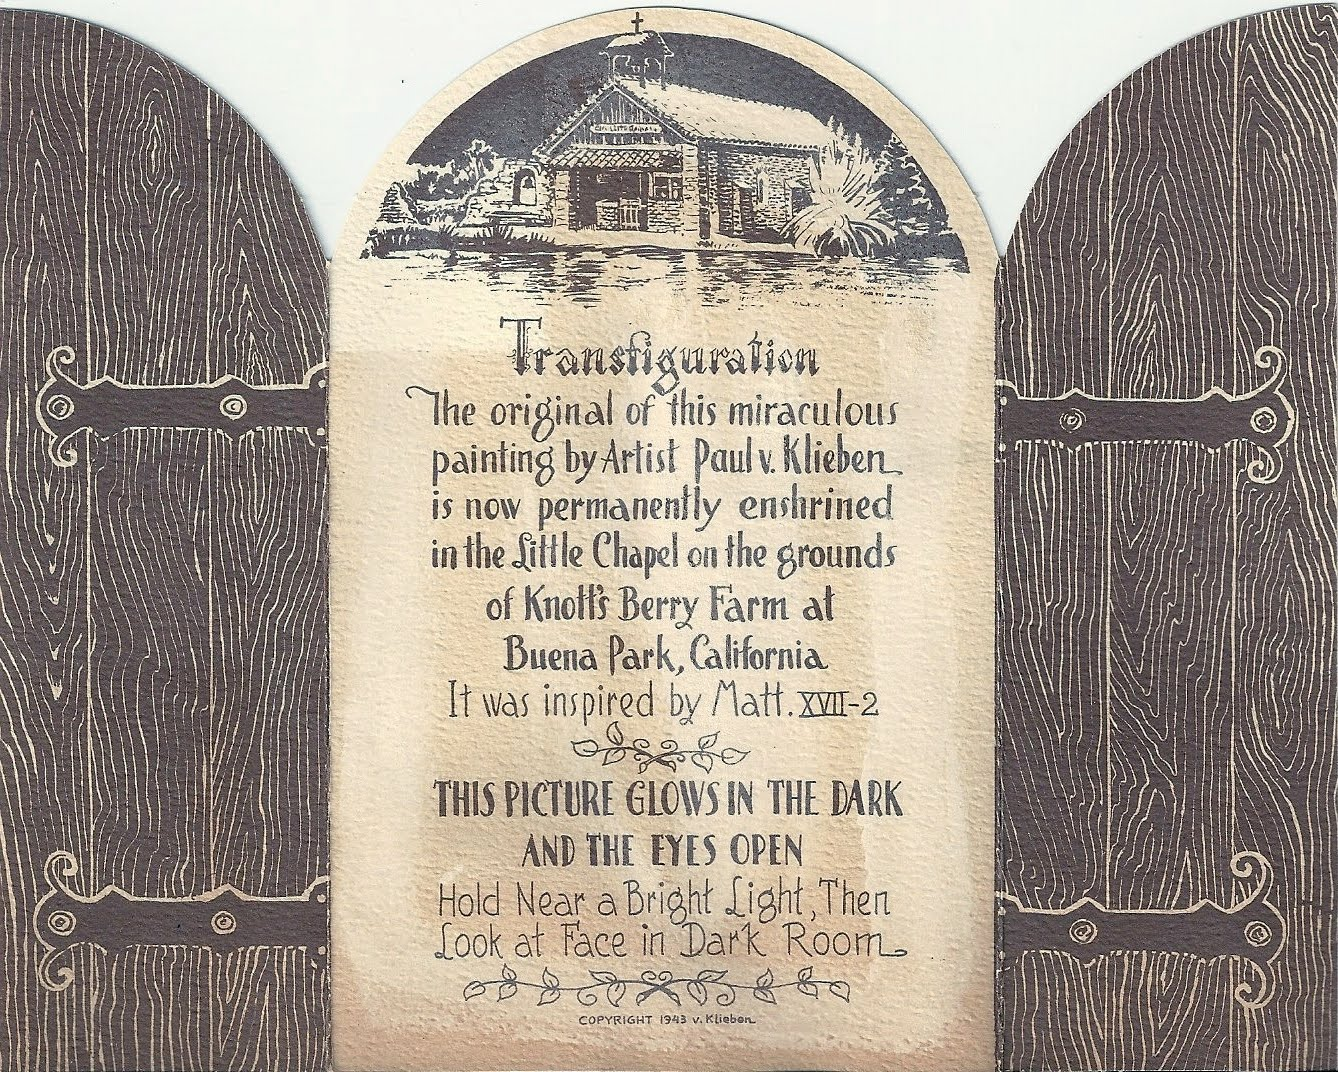 Transfiguration (back), Glow-in-the-dark souvenir from Our Little Chapel by the Lake, Reflection Lake, Knott's Berry Farm, Buena Park, California, 1943